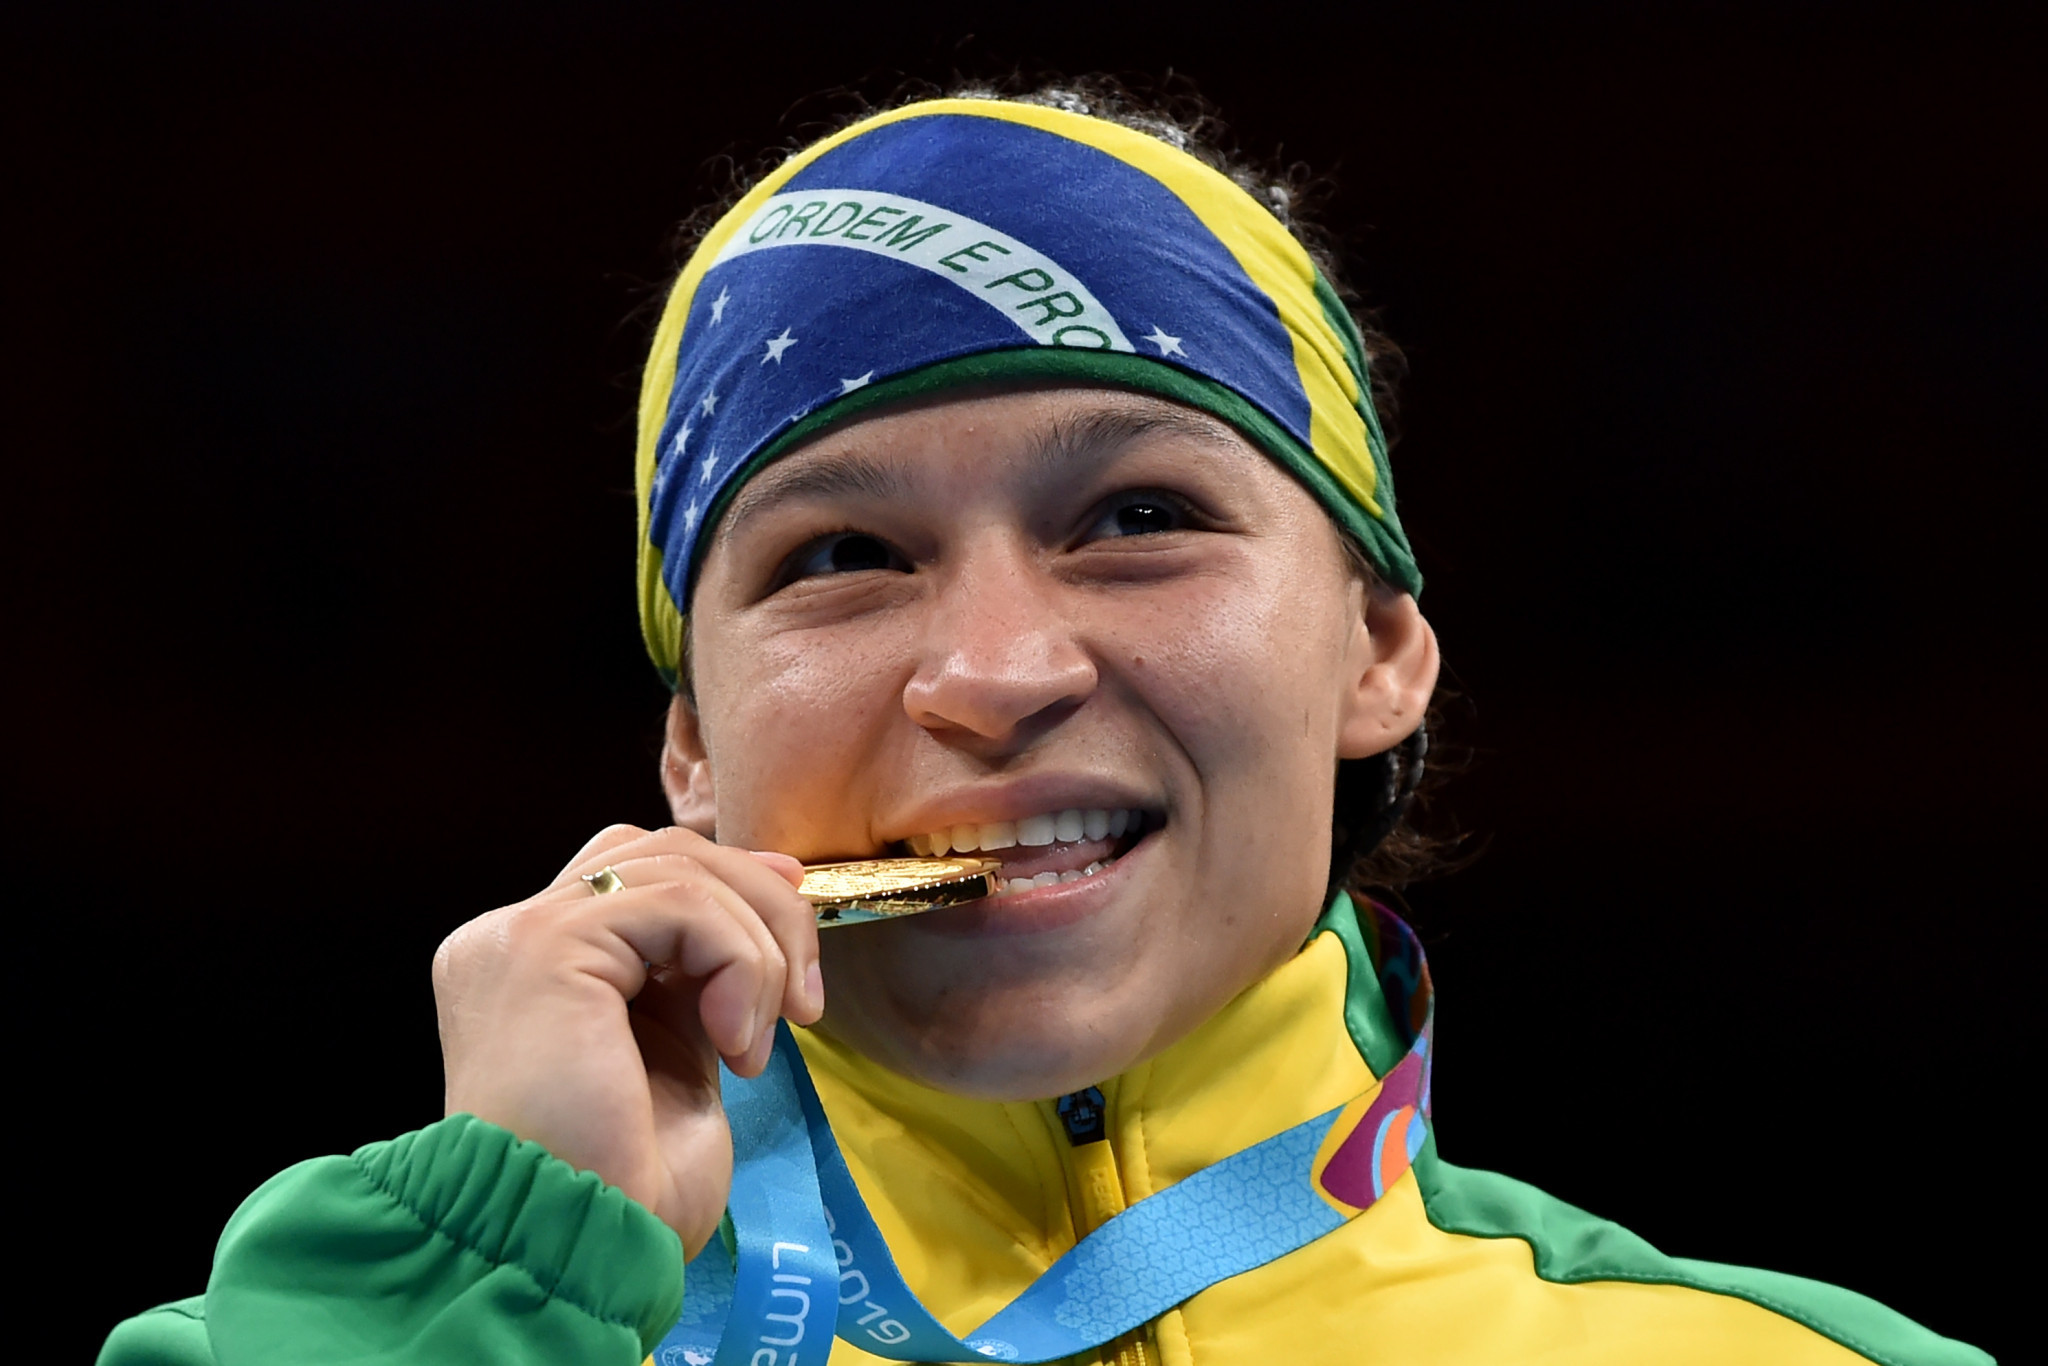 Beatriz Ferreira is the latest AIBA ambassador to be announced for the Youth World Boxing Championships ©Getty Images